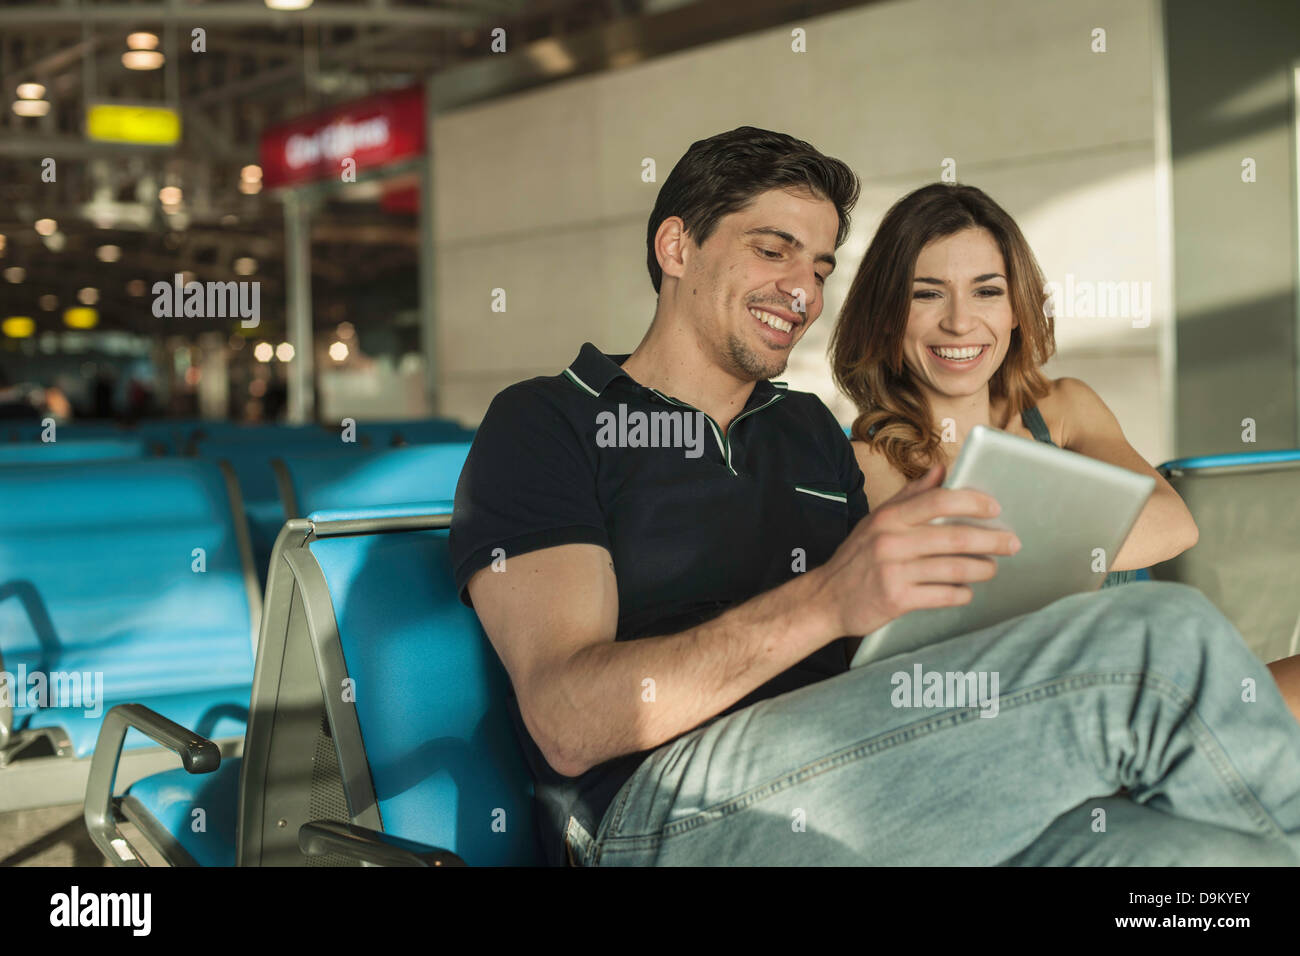 Young couple using digital tablet in airport departure lounge - Stock Image